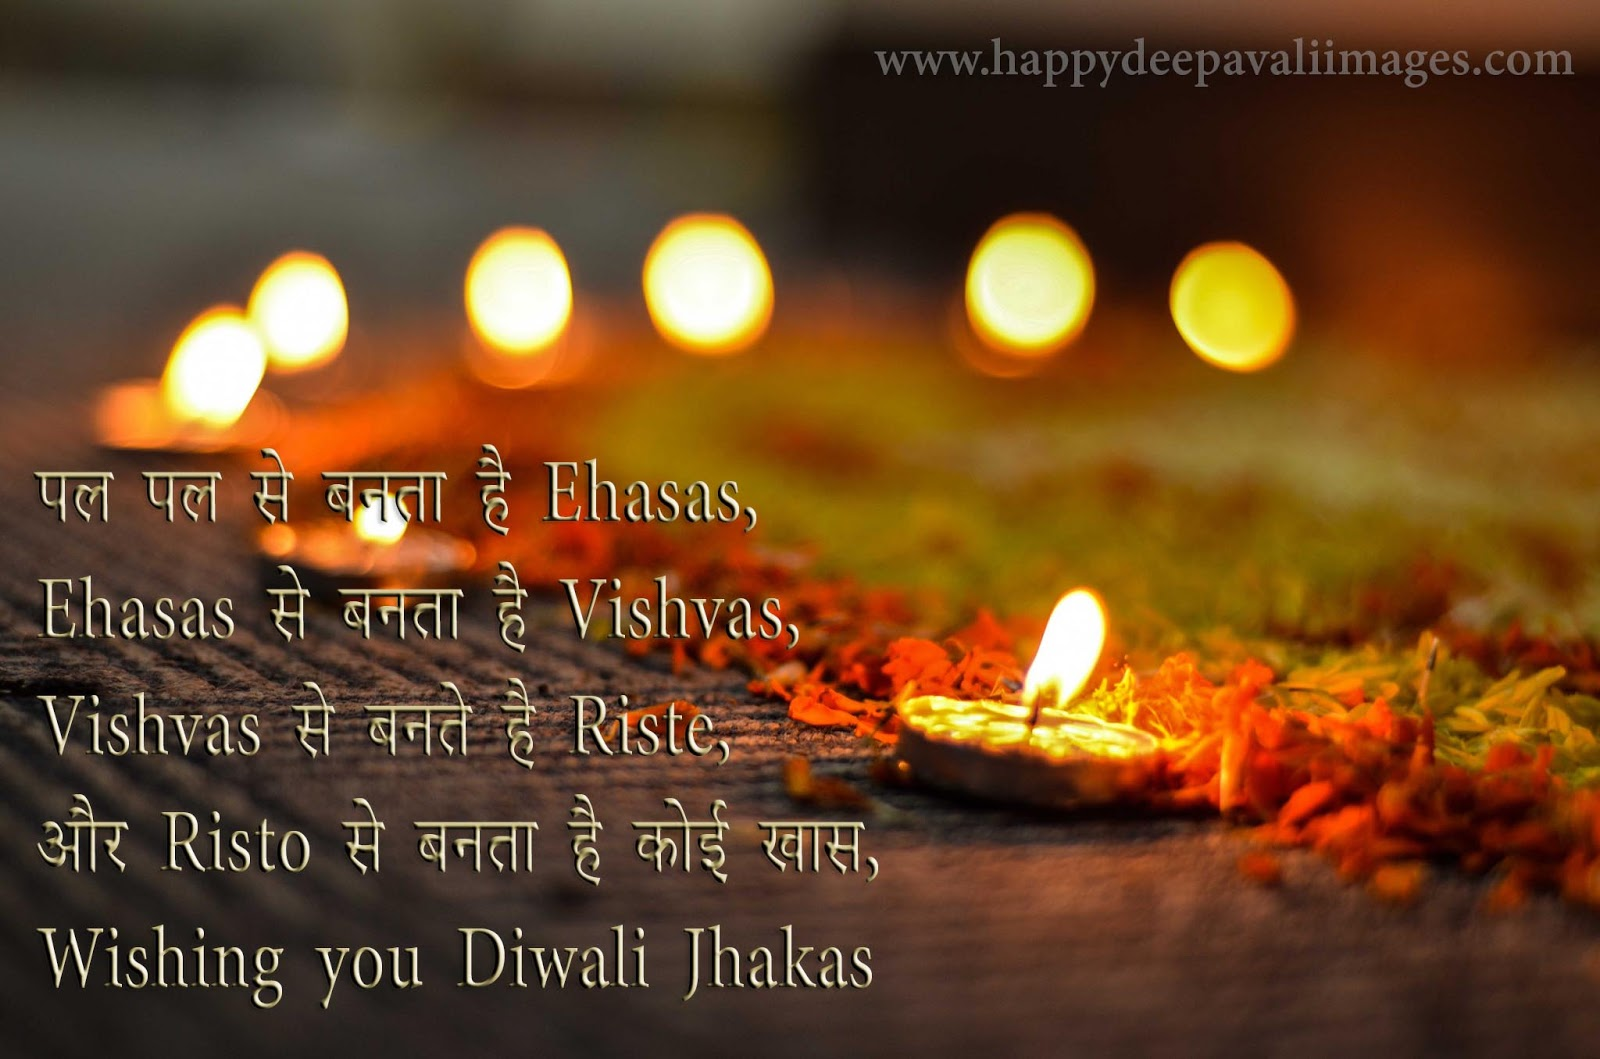 Happy diwali 2018 important things you need to know about diwali diwali greetings or messages image for facebook or whatsapp m4hsunfo